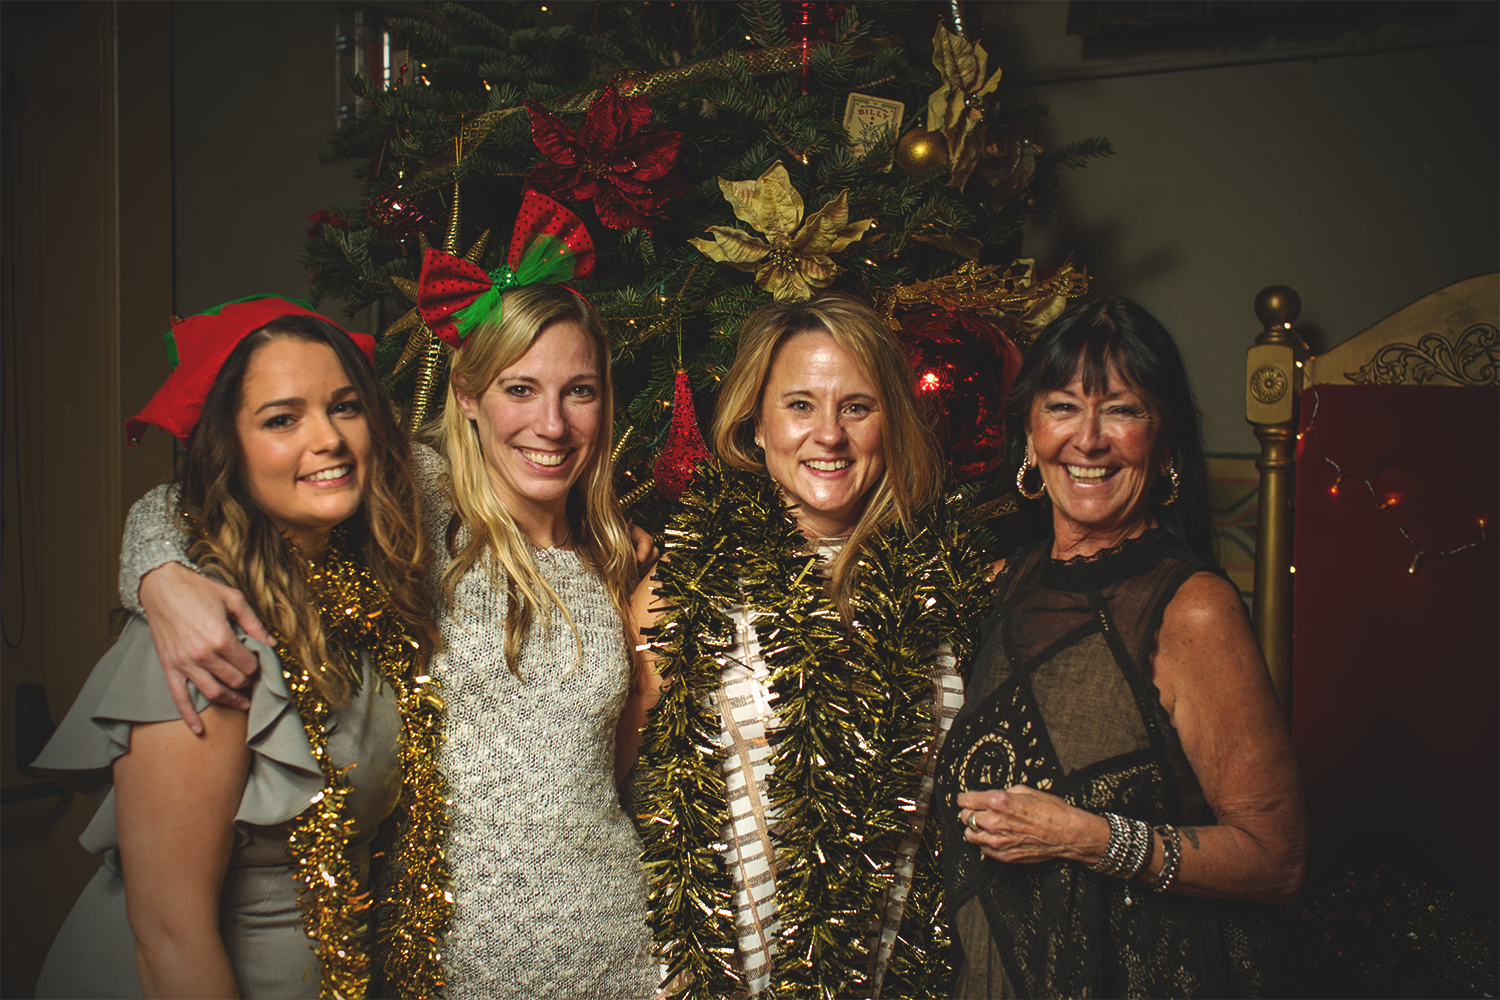 epproperties-vancouver-washington-xmas-party-photolga8.png